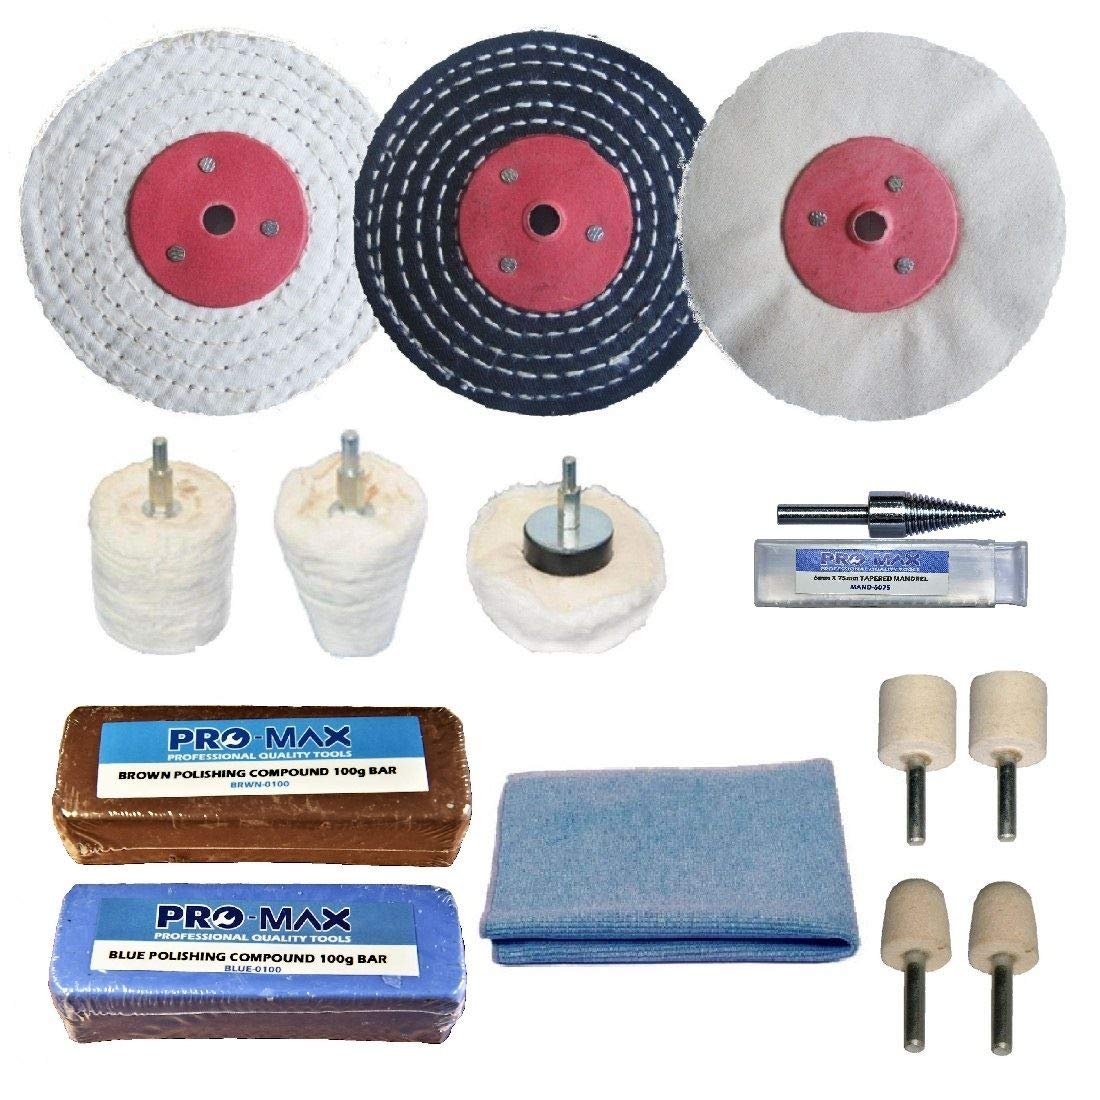 Aluminium Alloy Brass Metal Polishing Buffing Kit Pro-Max 3' x 1/2' Metal Polishing Supplies UK Ltd